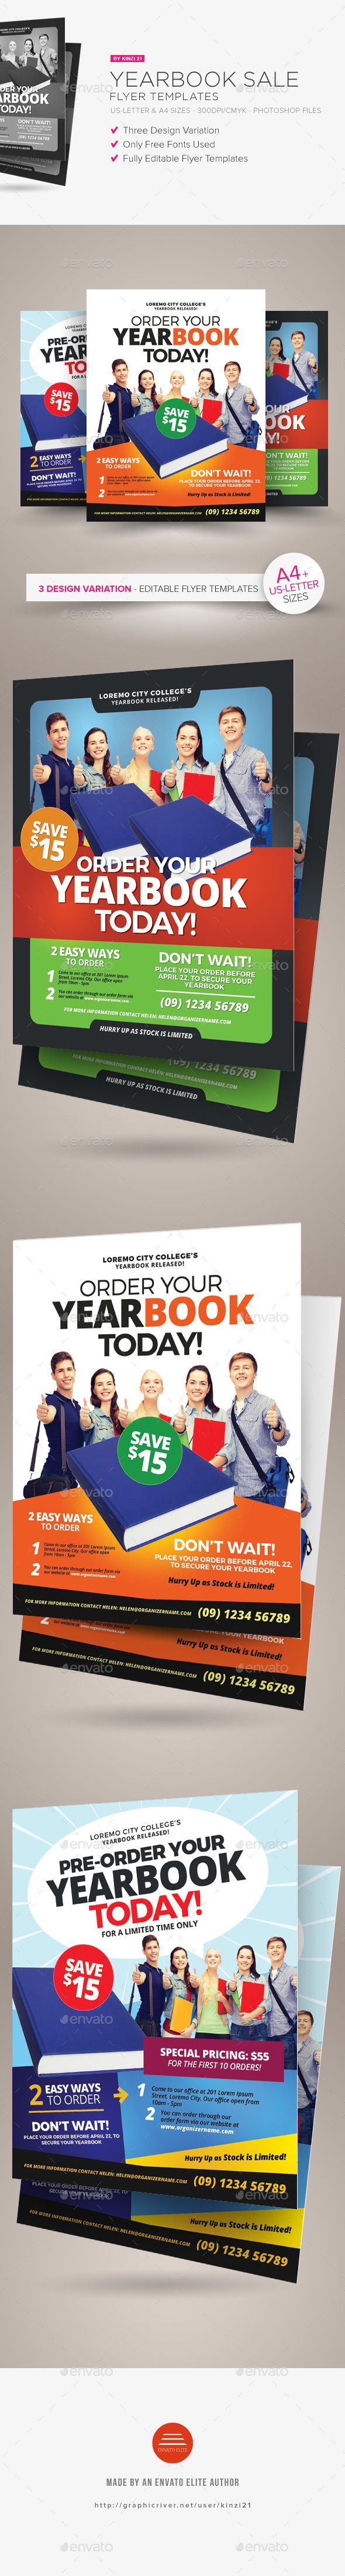 25 best yearbook template trending ideas on pinterest yearbook design layout yearbook ideas. Black Bedroom Furniture Sets. Home Design Ideas